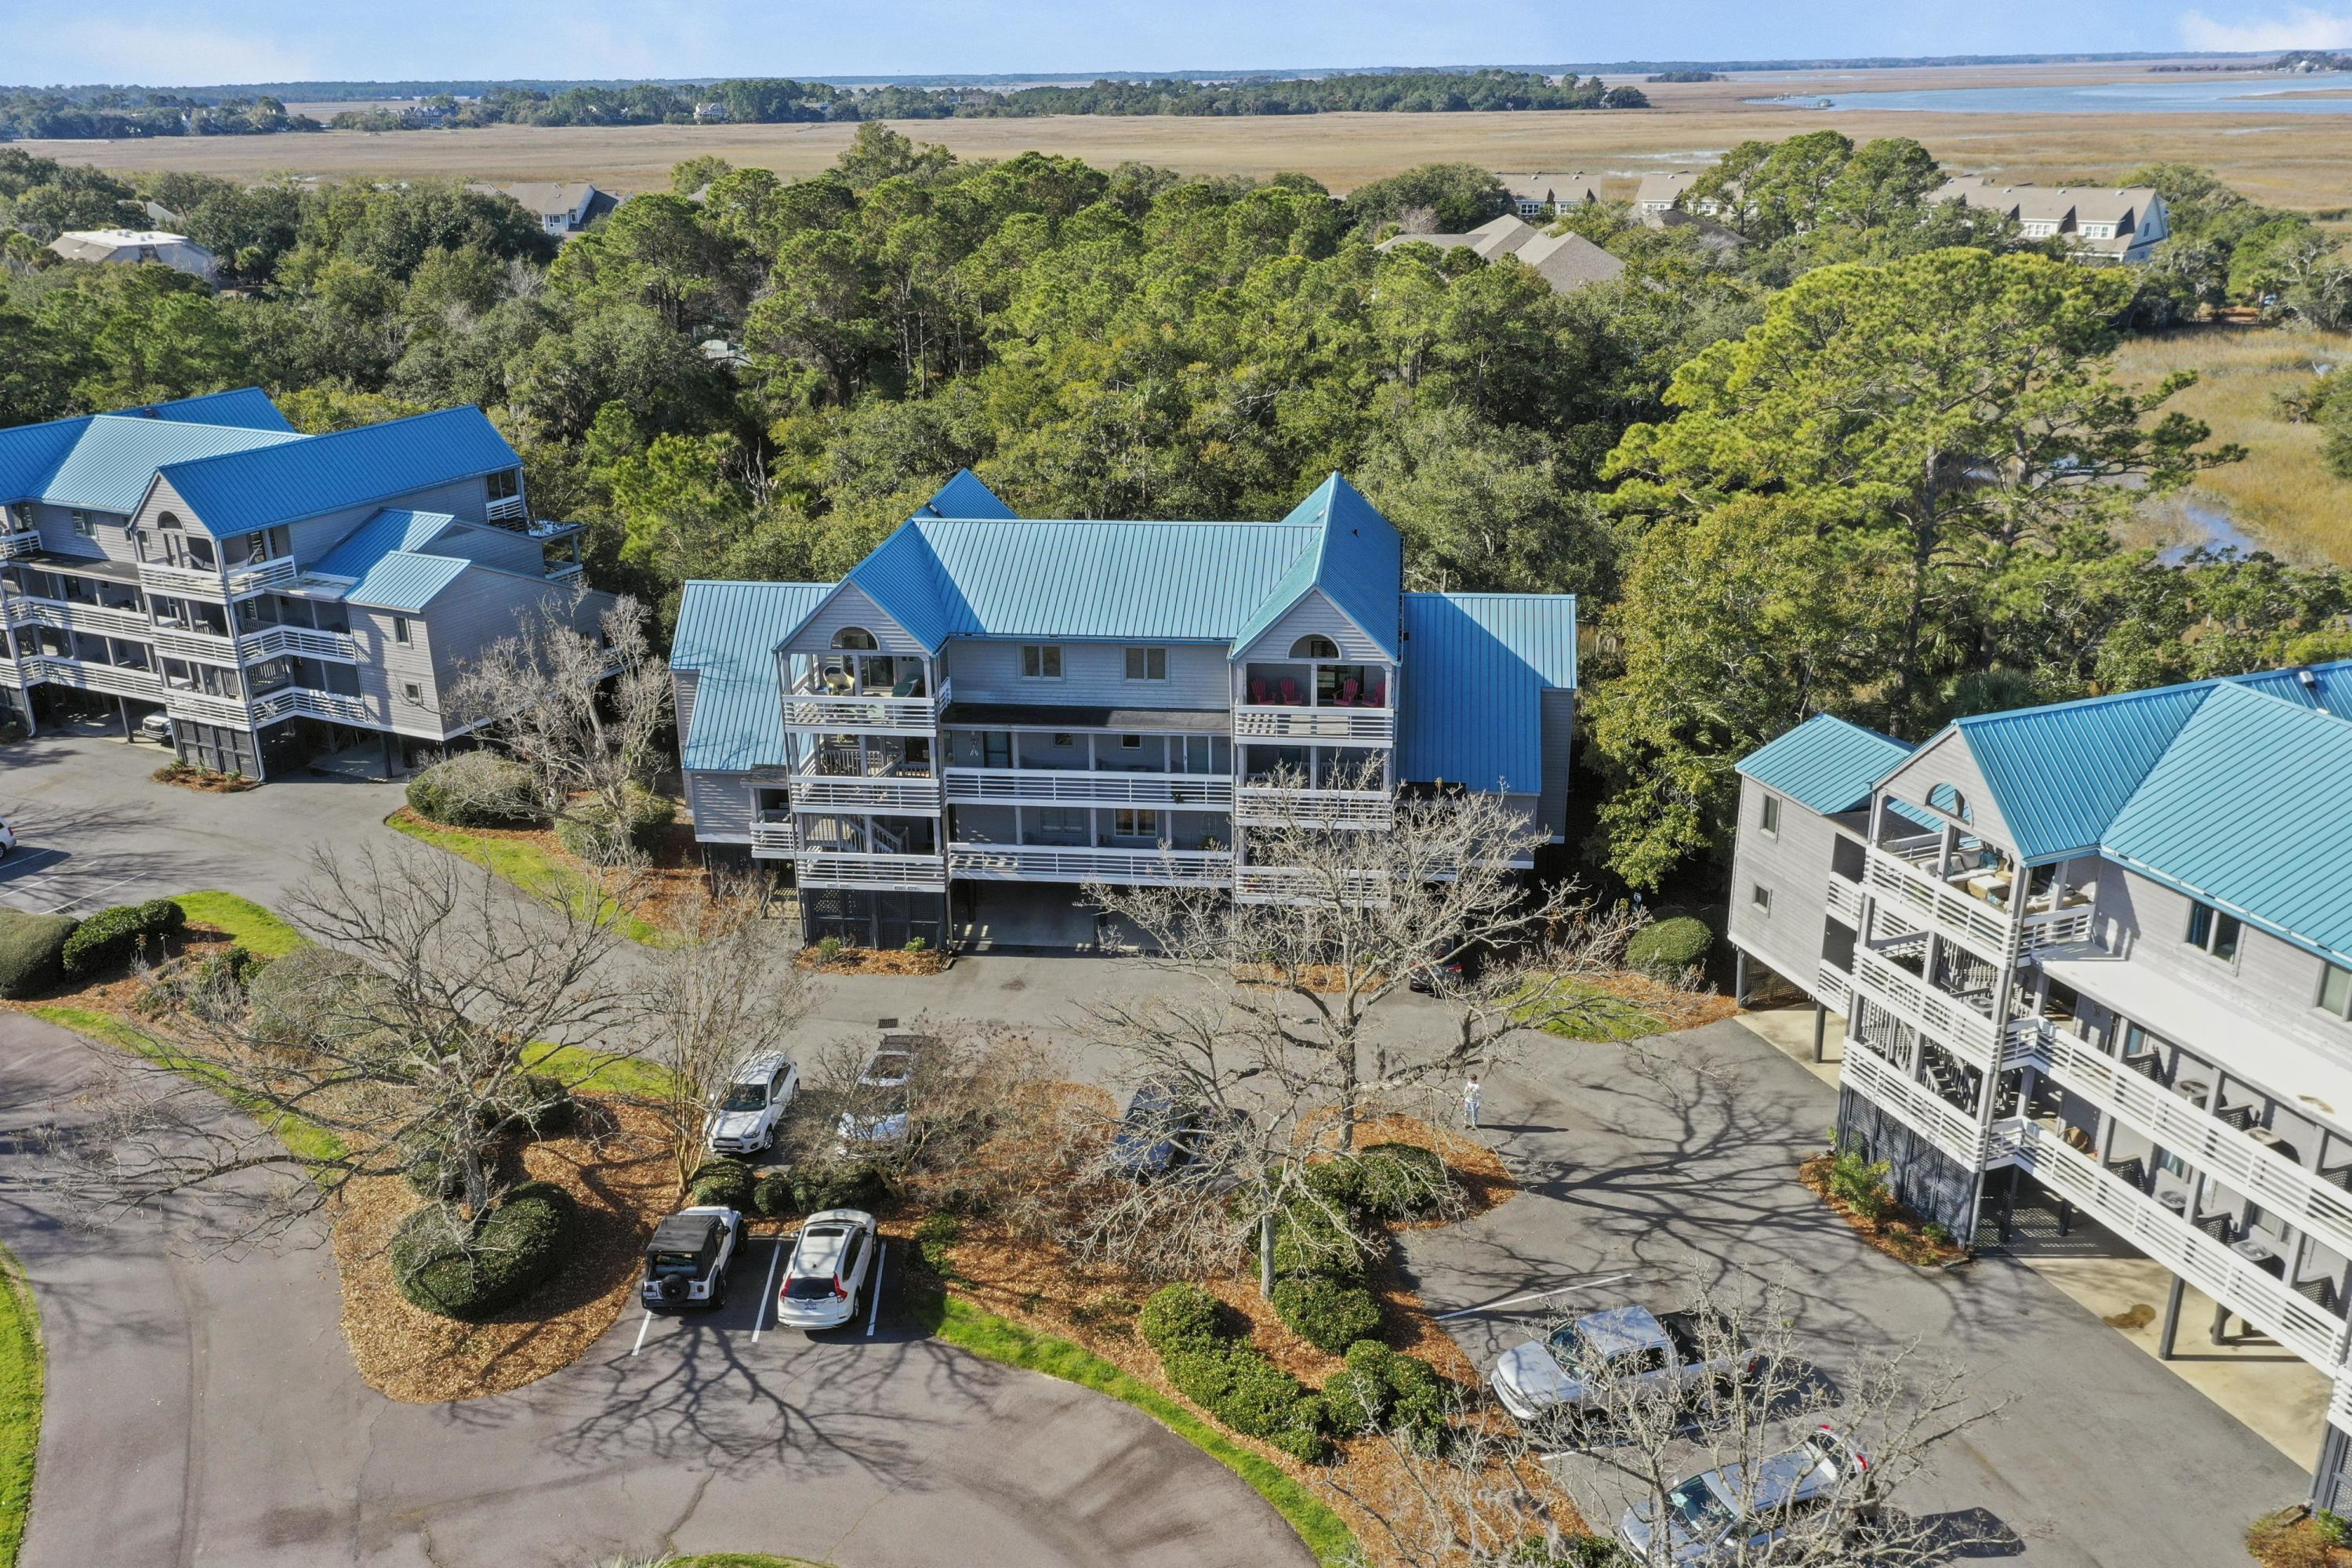 Seabrook Island Condos For Sale - 2416 Racquet Club, Seabrook Island, SC - 23